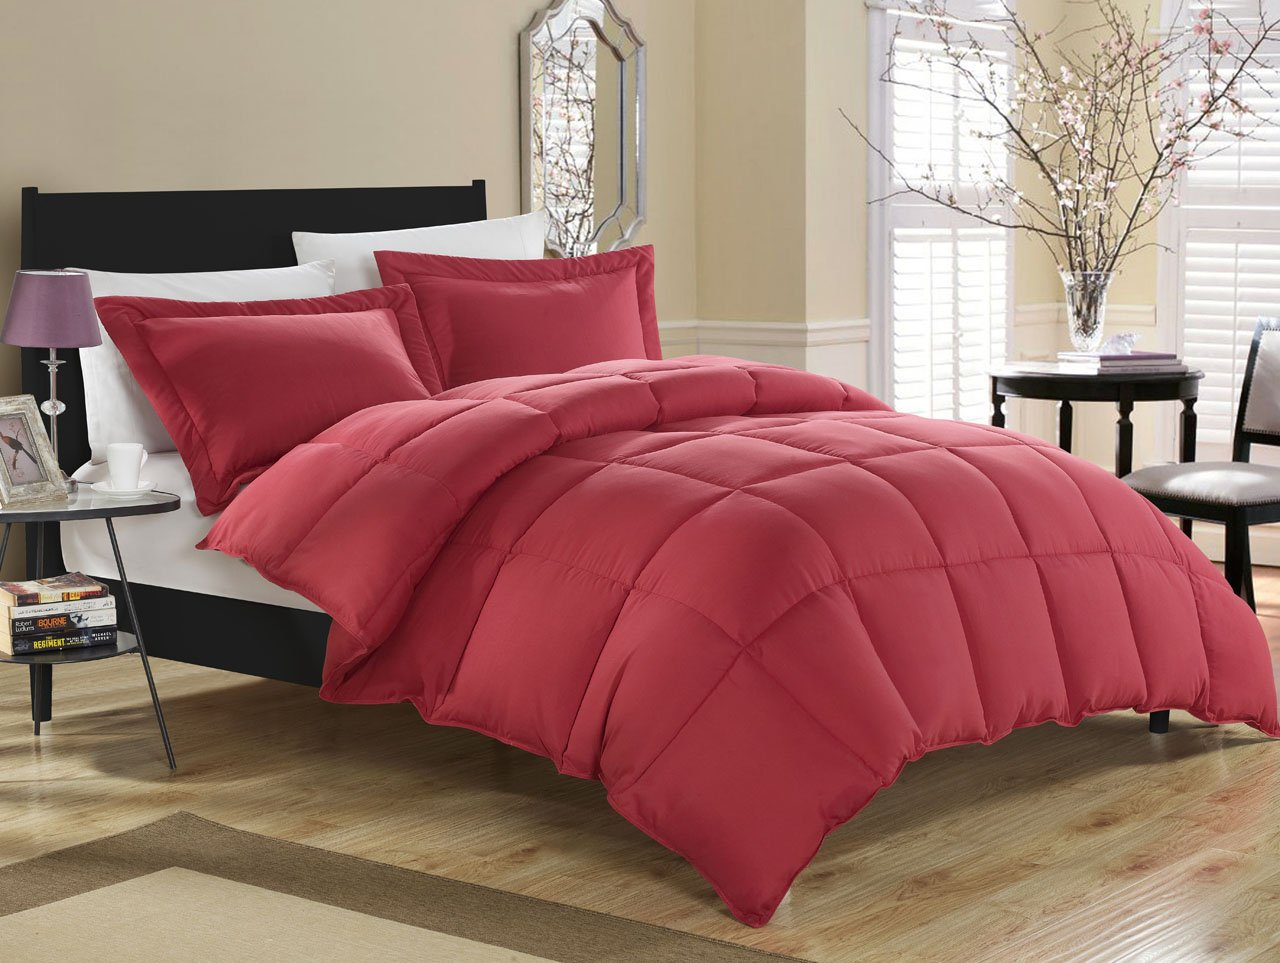 covers bedding queen cover white unique duvet idea and within flannel red sets plaid us king duvets